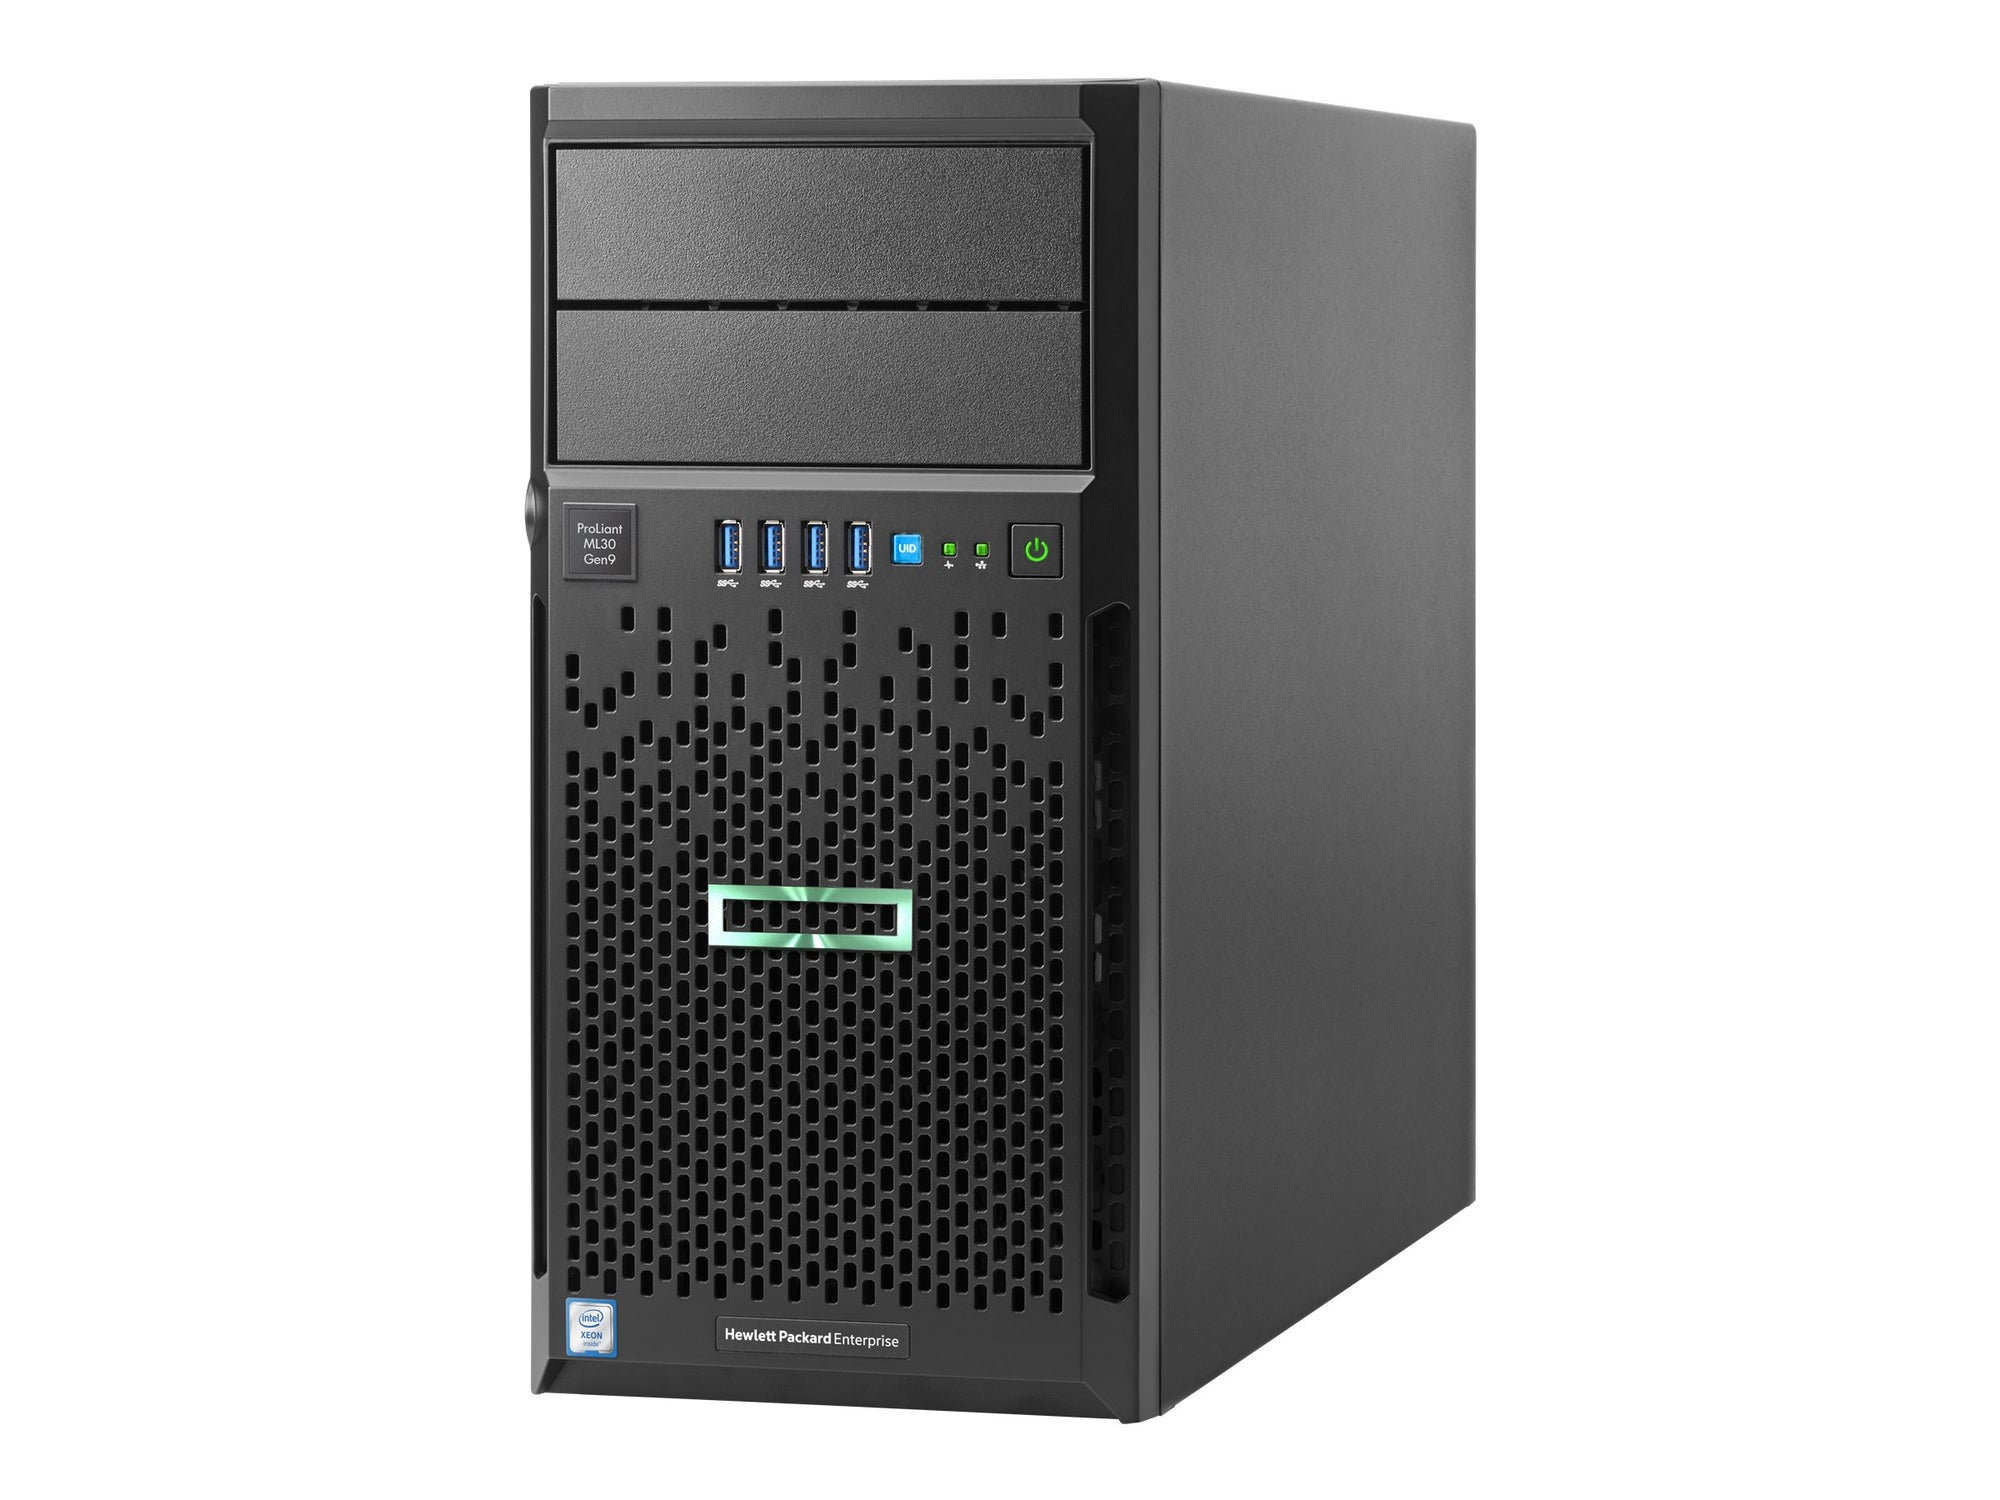 Refurbished HPE ProLiant ML30 Gen9 Configure to Order Tower Server